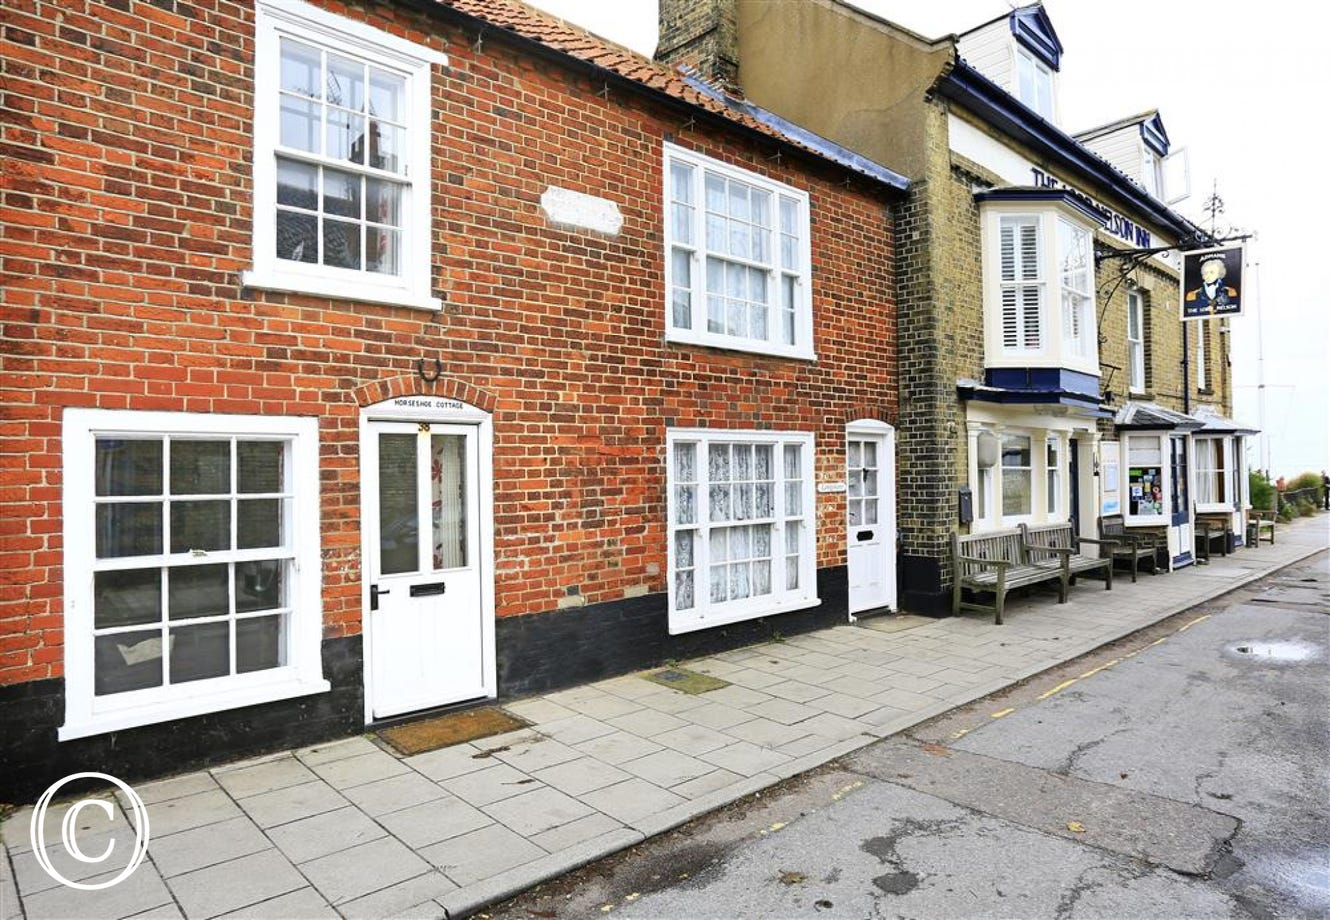 Horseshoe Cottage is in the heart of Southwold with the high street to the right and the beach to the left.